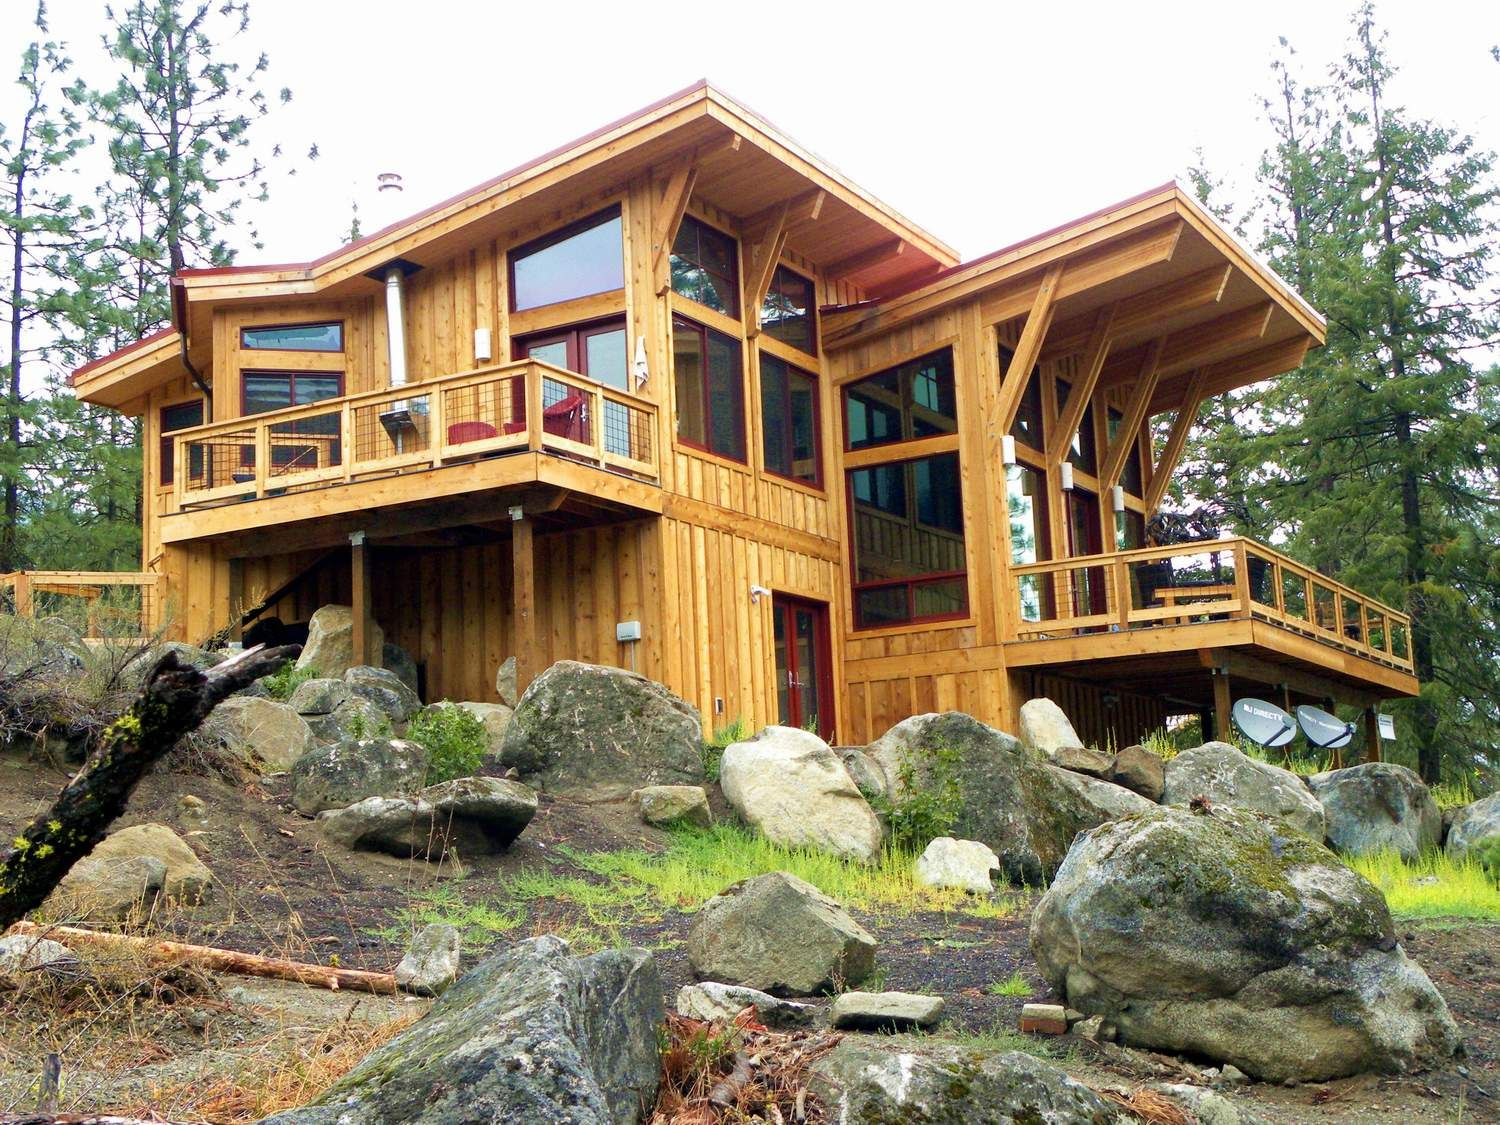 Pan Abode Homes Cabins and cottages, Modern mountain home